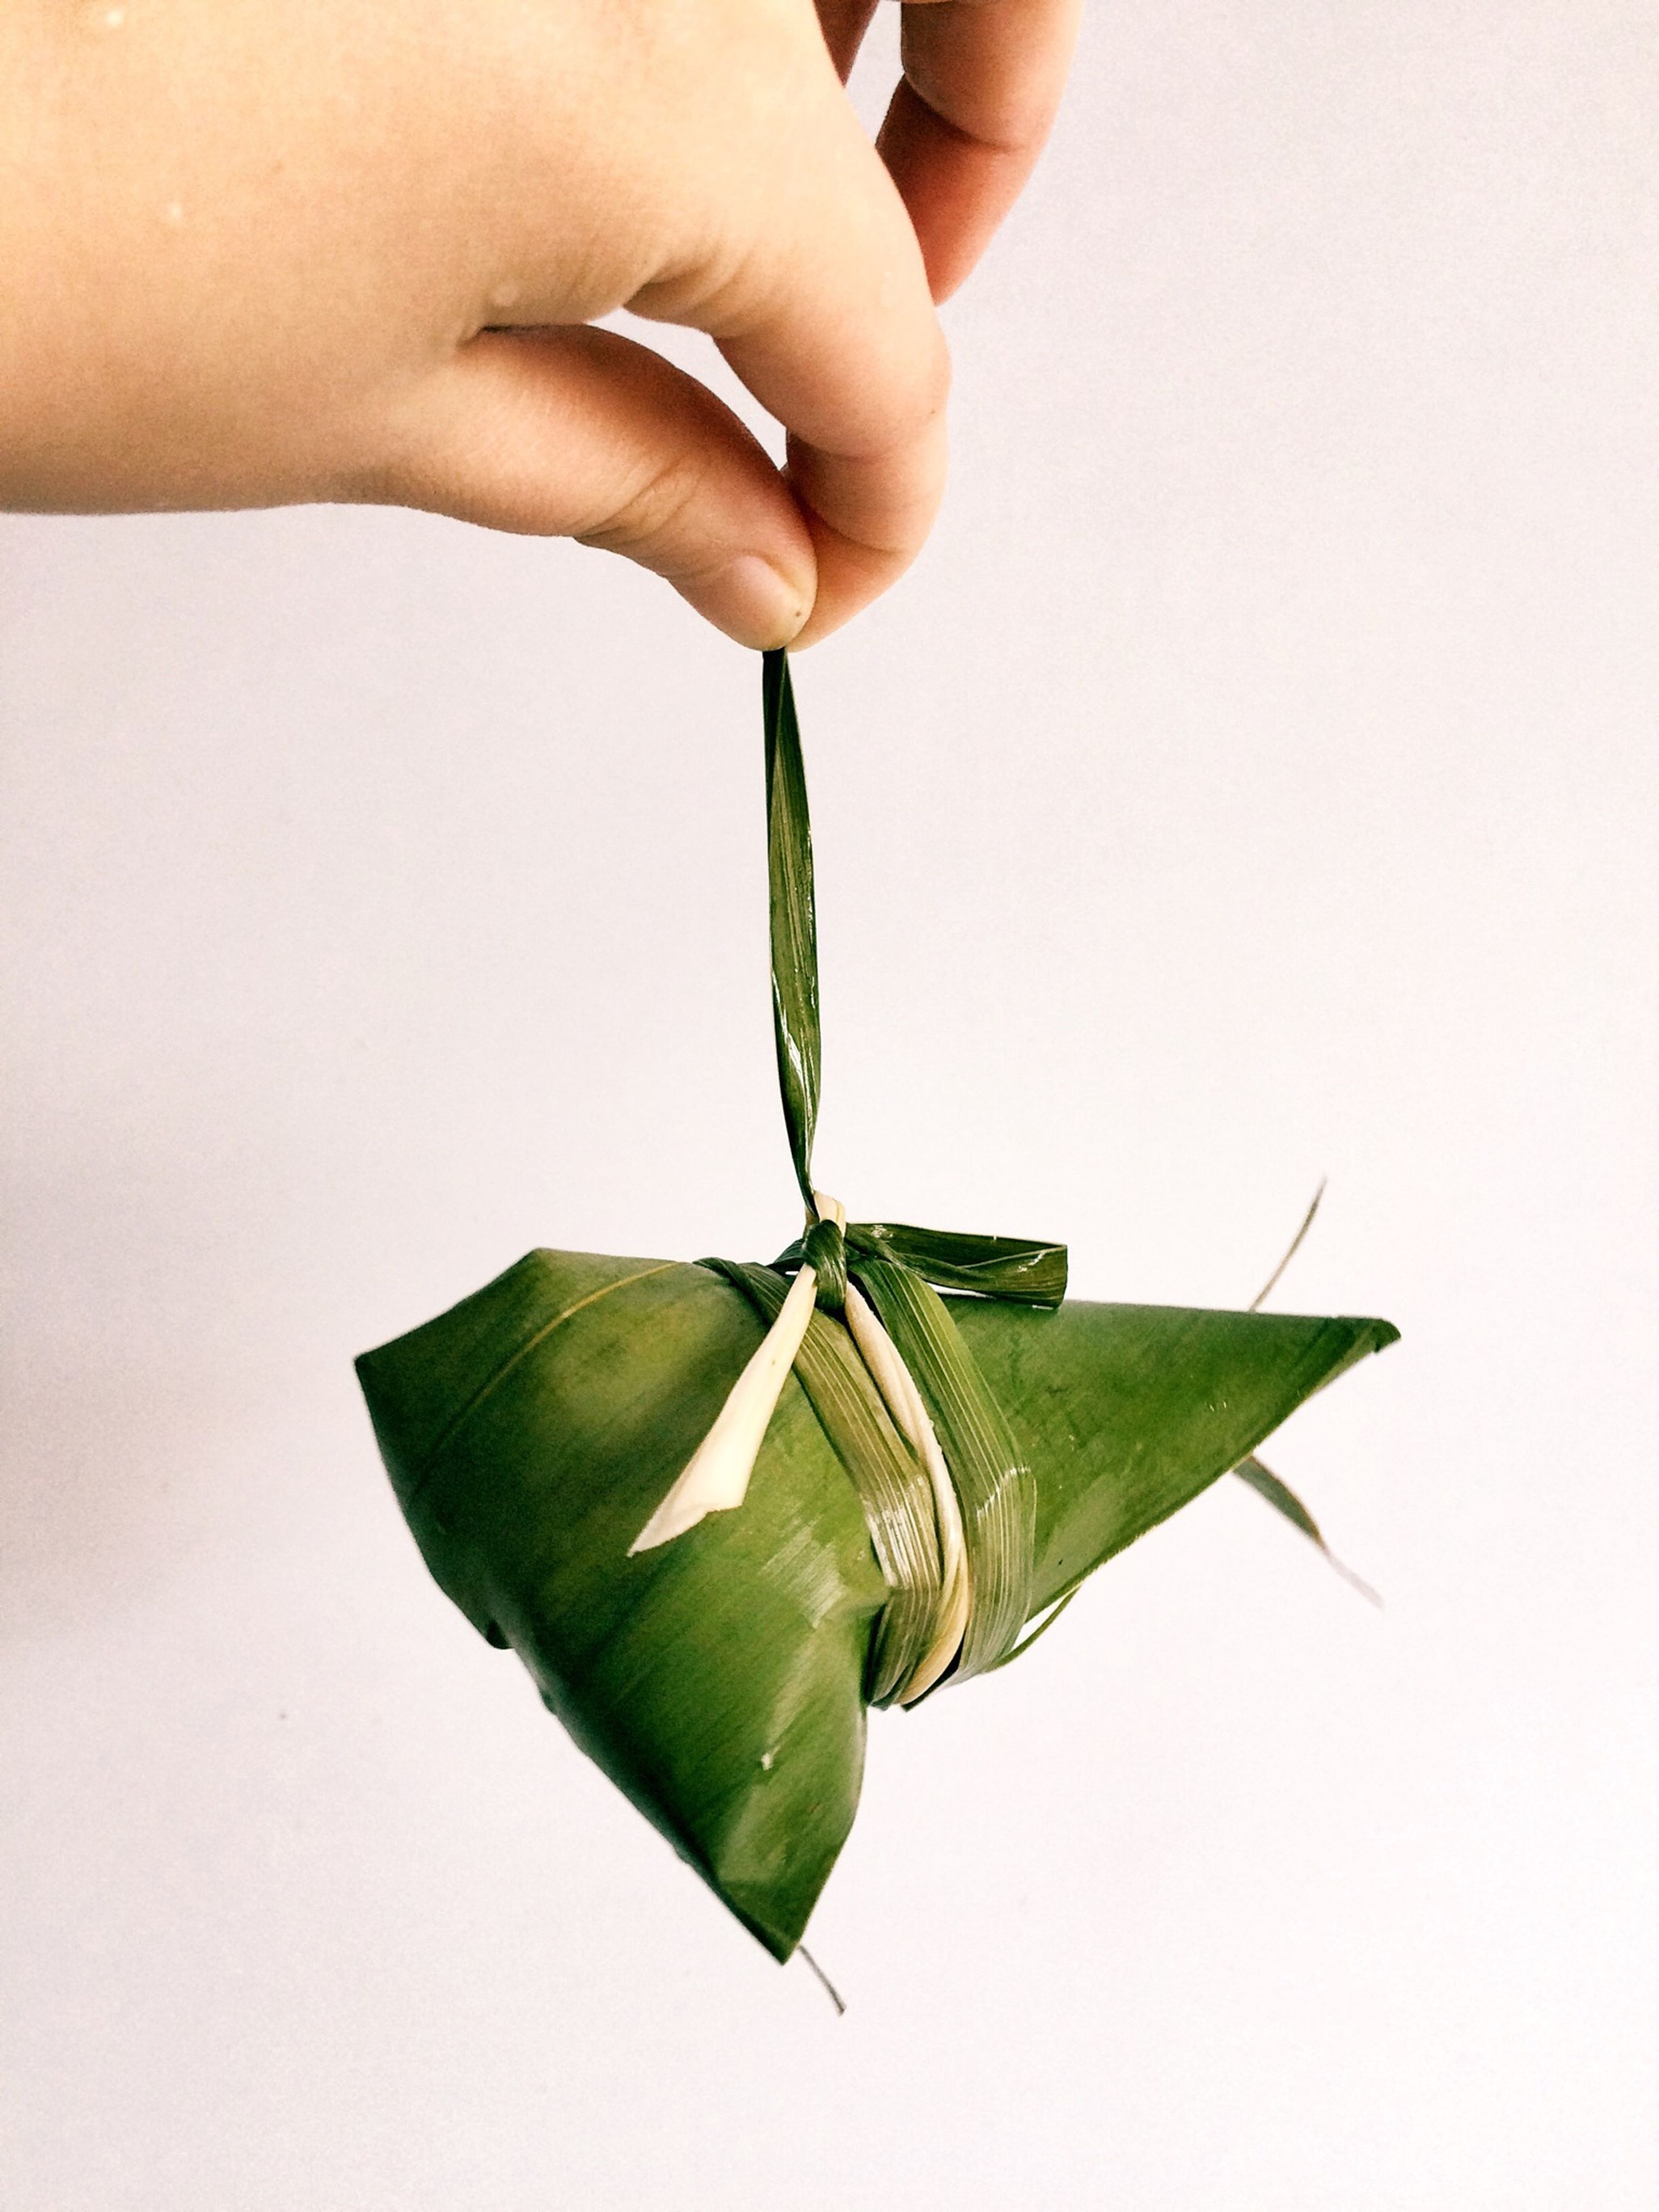 person, holding, green color, studio shot, white background, leaf, copy space, lifestyles, close-up, human finger, part of, childhood, leisure activity, cropped, unrecognizable person, showing, indoors